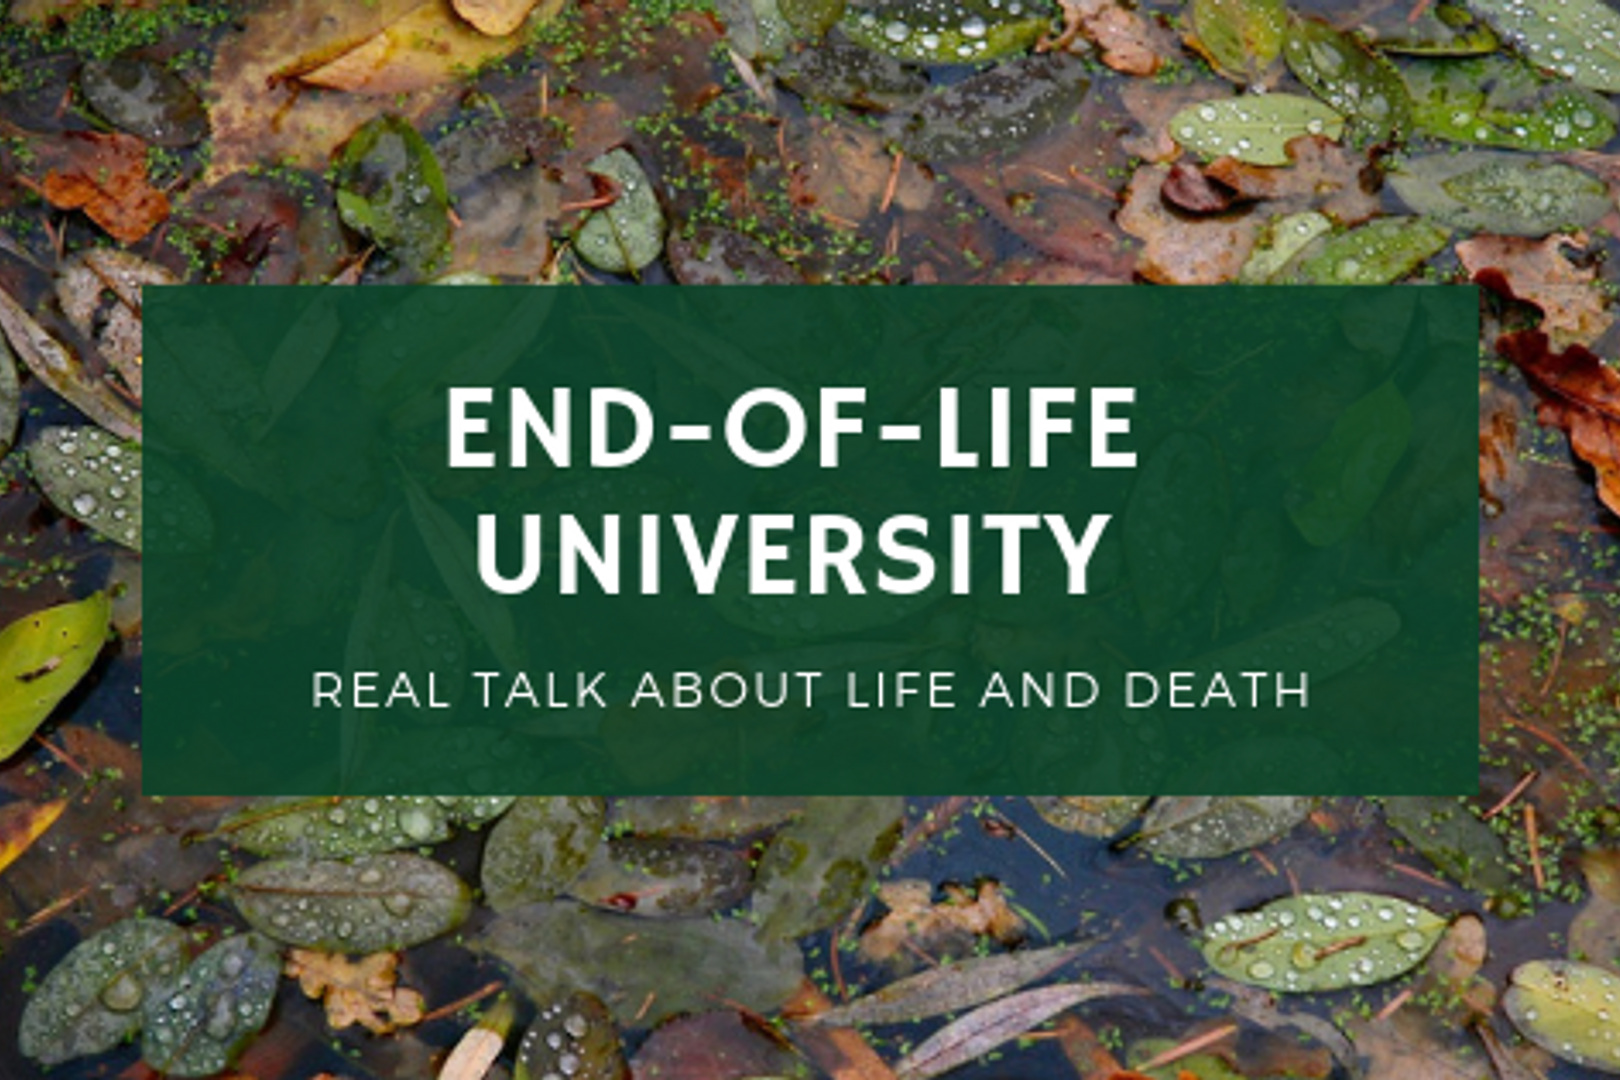 US:End-of-Life University - Real talk about life and deathLaunched by Karen Wyatt, MD, it offers free podcasts and more.EOL University website